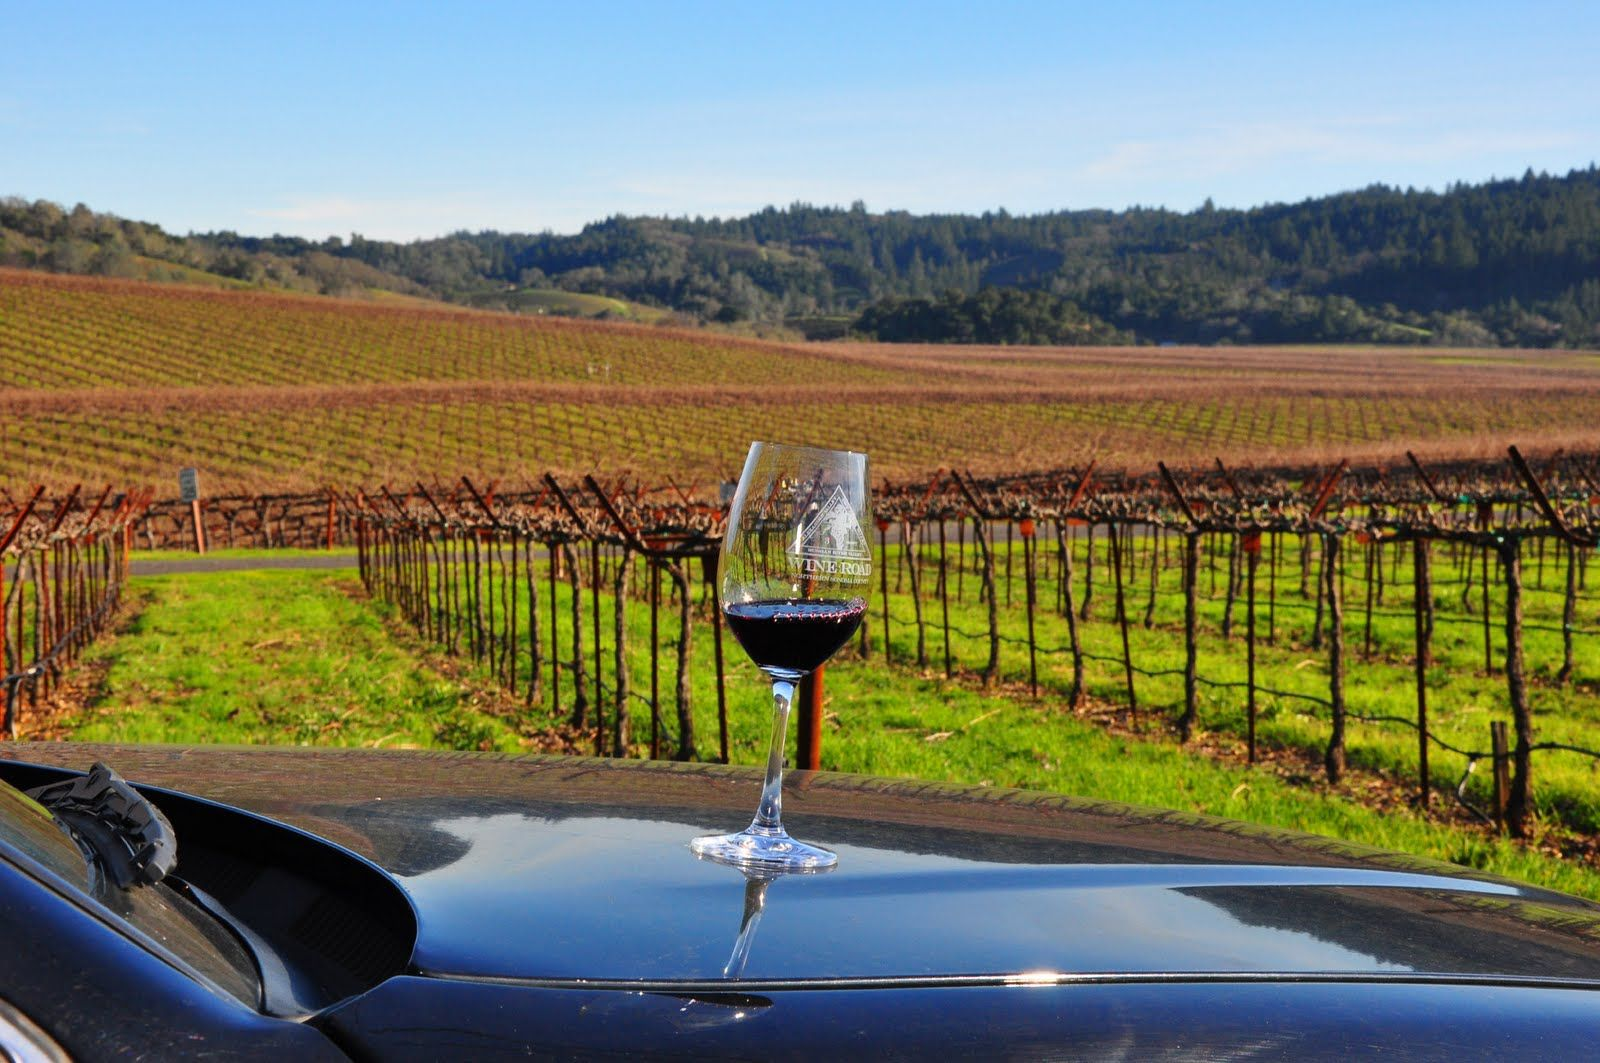 ... Dozens of wineries located along the Northern Sonoma County Wine Road participated in the 19th Annual Winter Wineland last weekend. To learn more about Beau Wine Tours and the services we offer in #NapaValley & #Sonoma click here: https://www.beauwinetours.com/